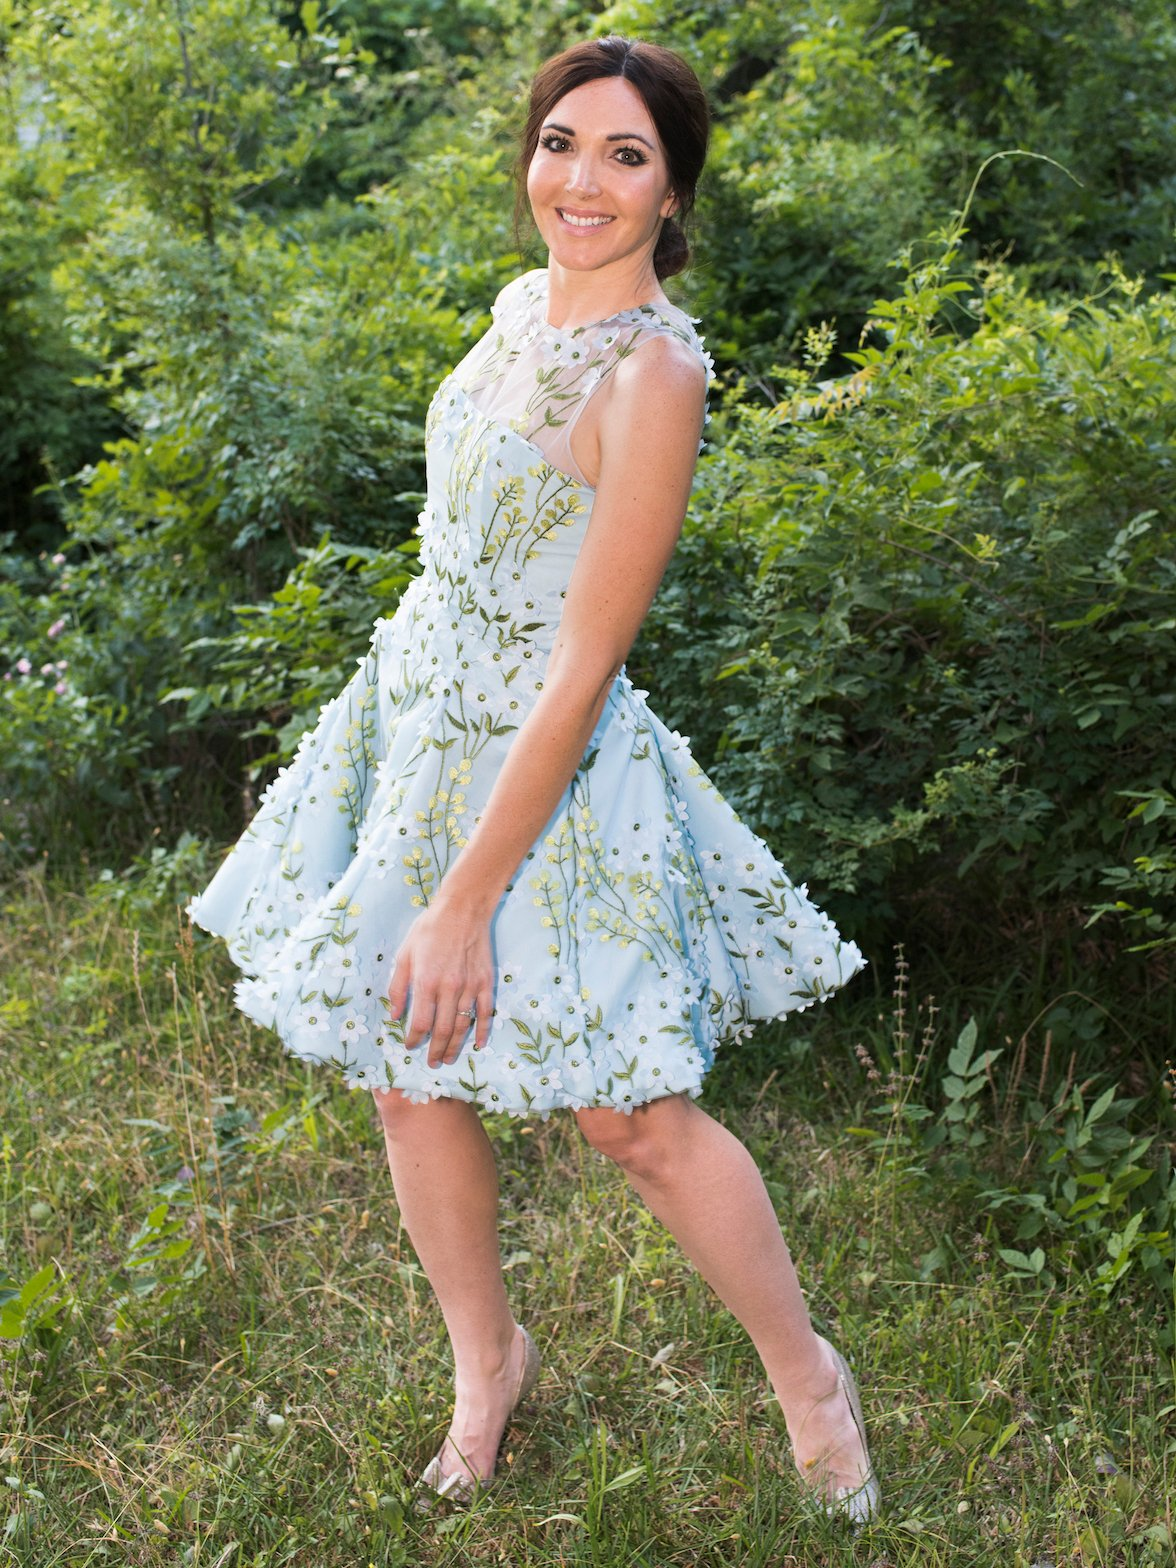 Lilies of the Field - They Bloom Dress Pic 2